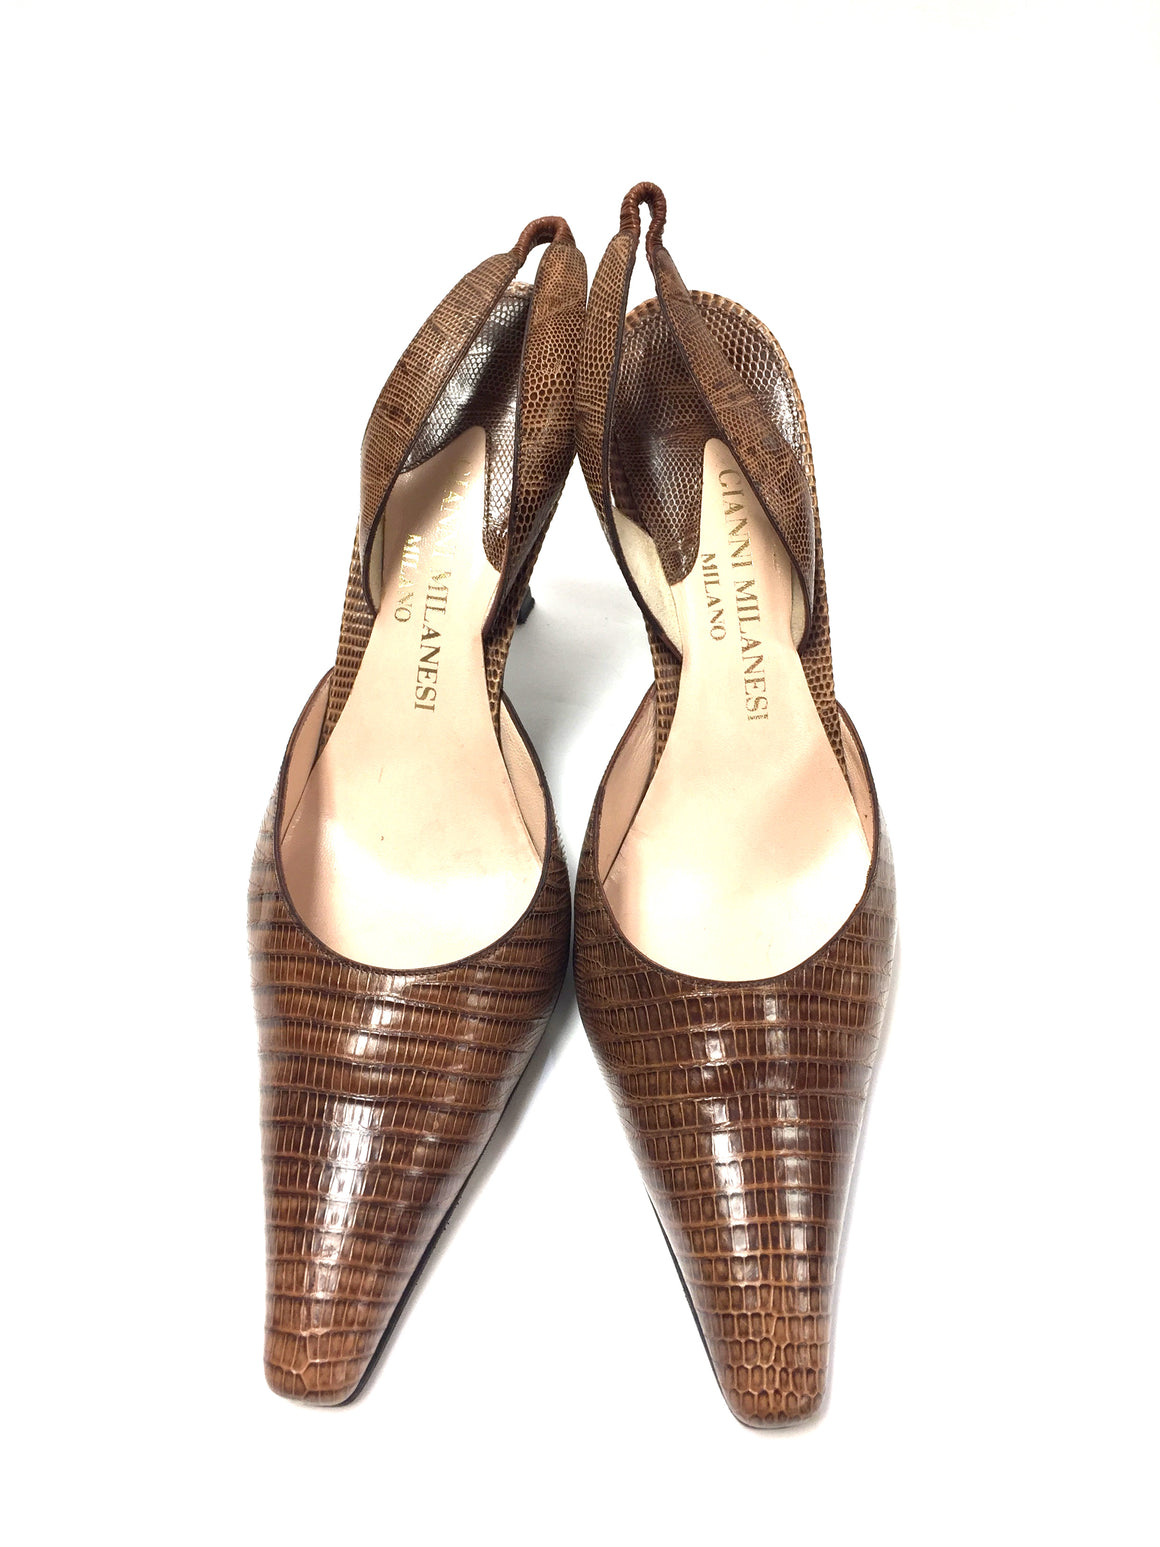 GIANNI MILANESI   Light-Brown Lizard Skin Hi-Heel Slingbacks Shoes Size: IT 39 / 9